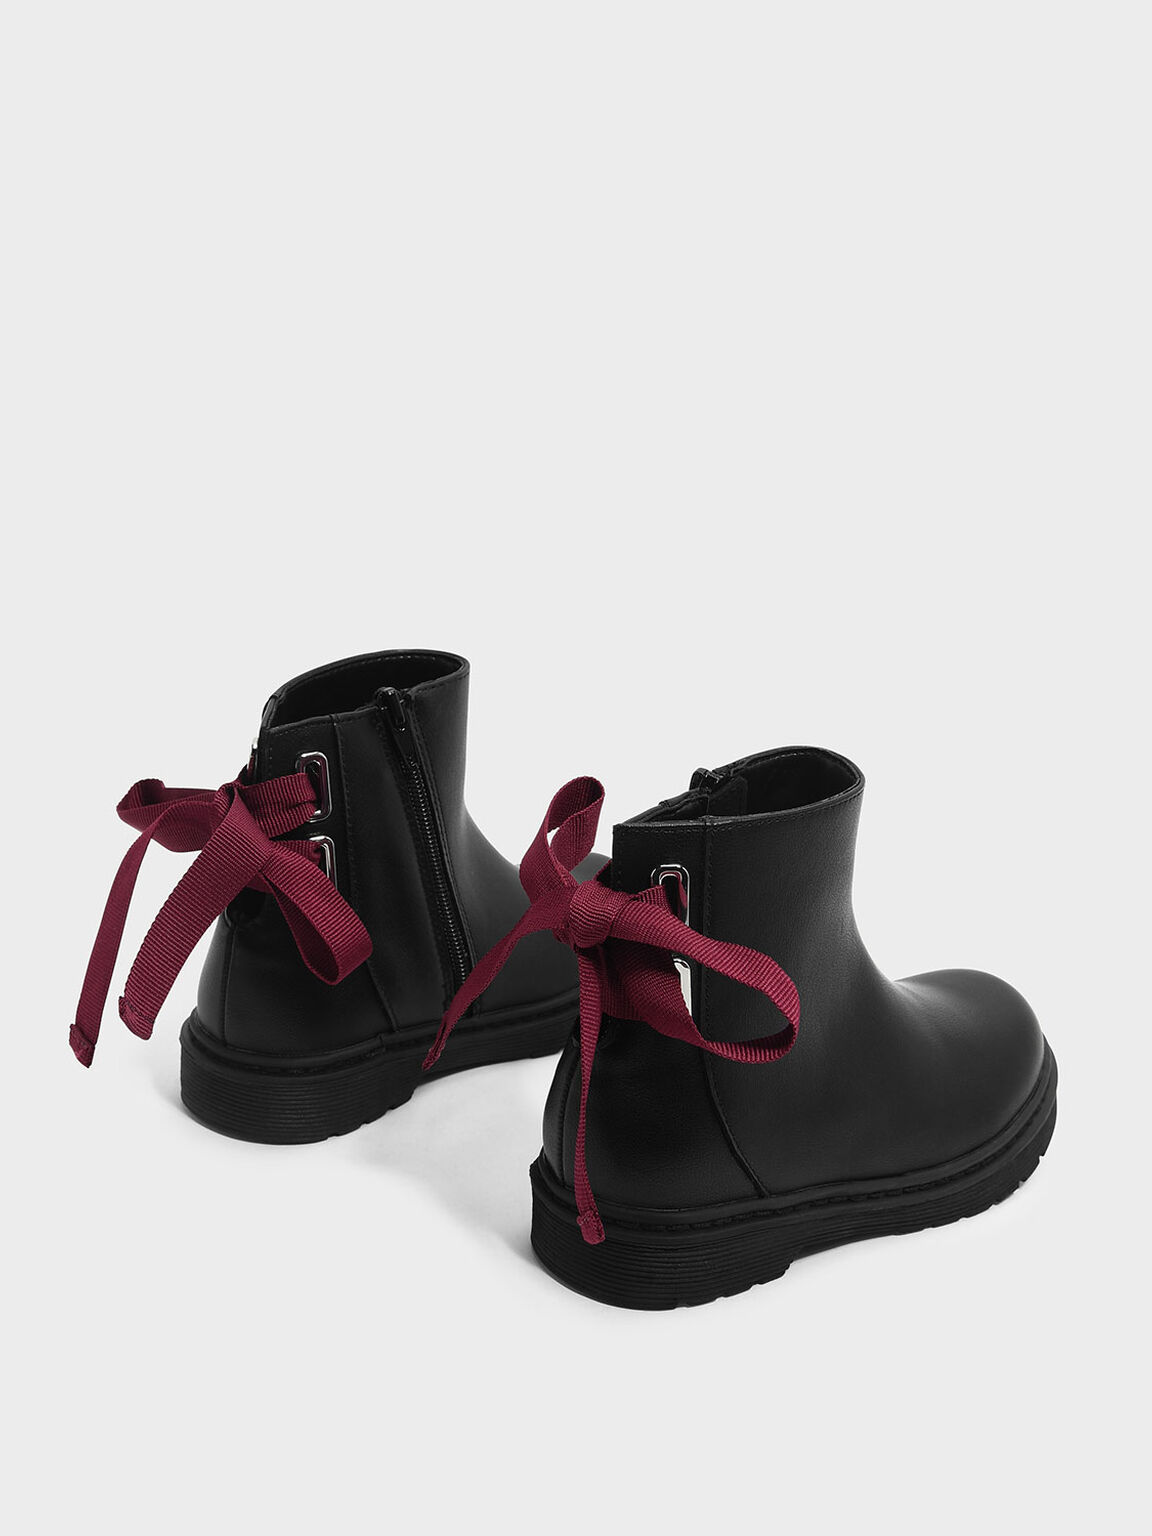 Kids Ribbon Detail Boots, Black, hi-res